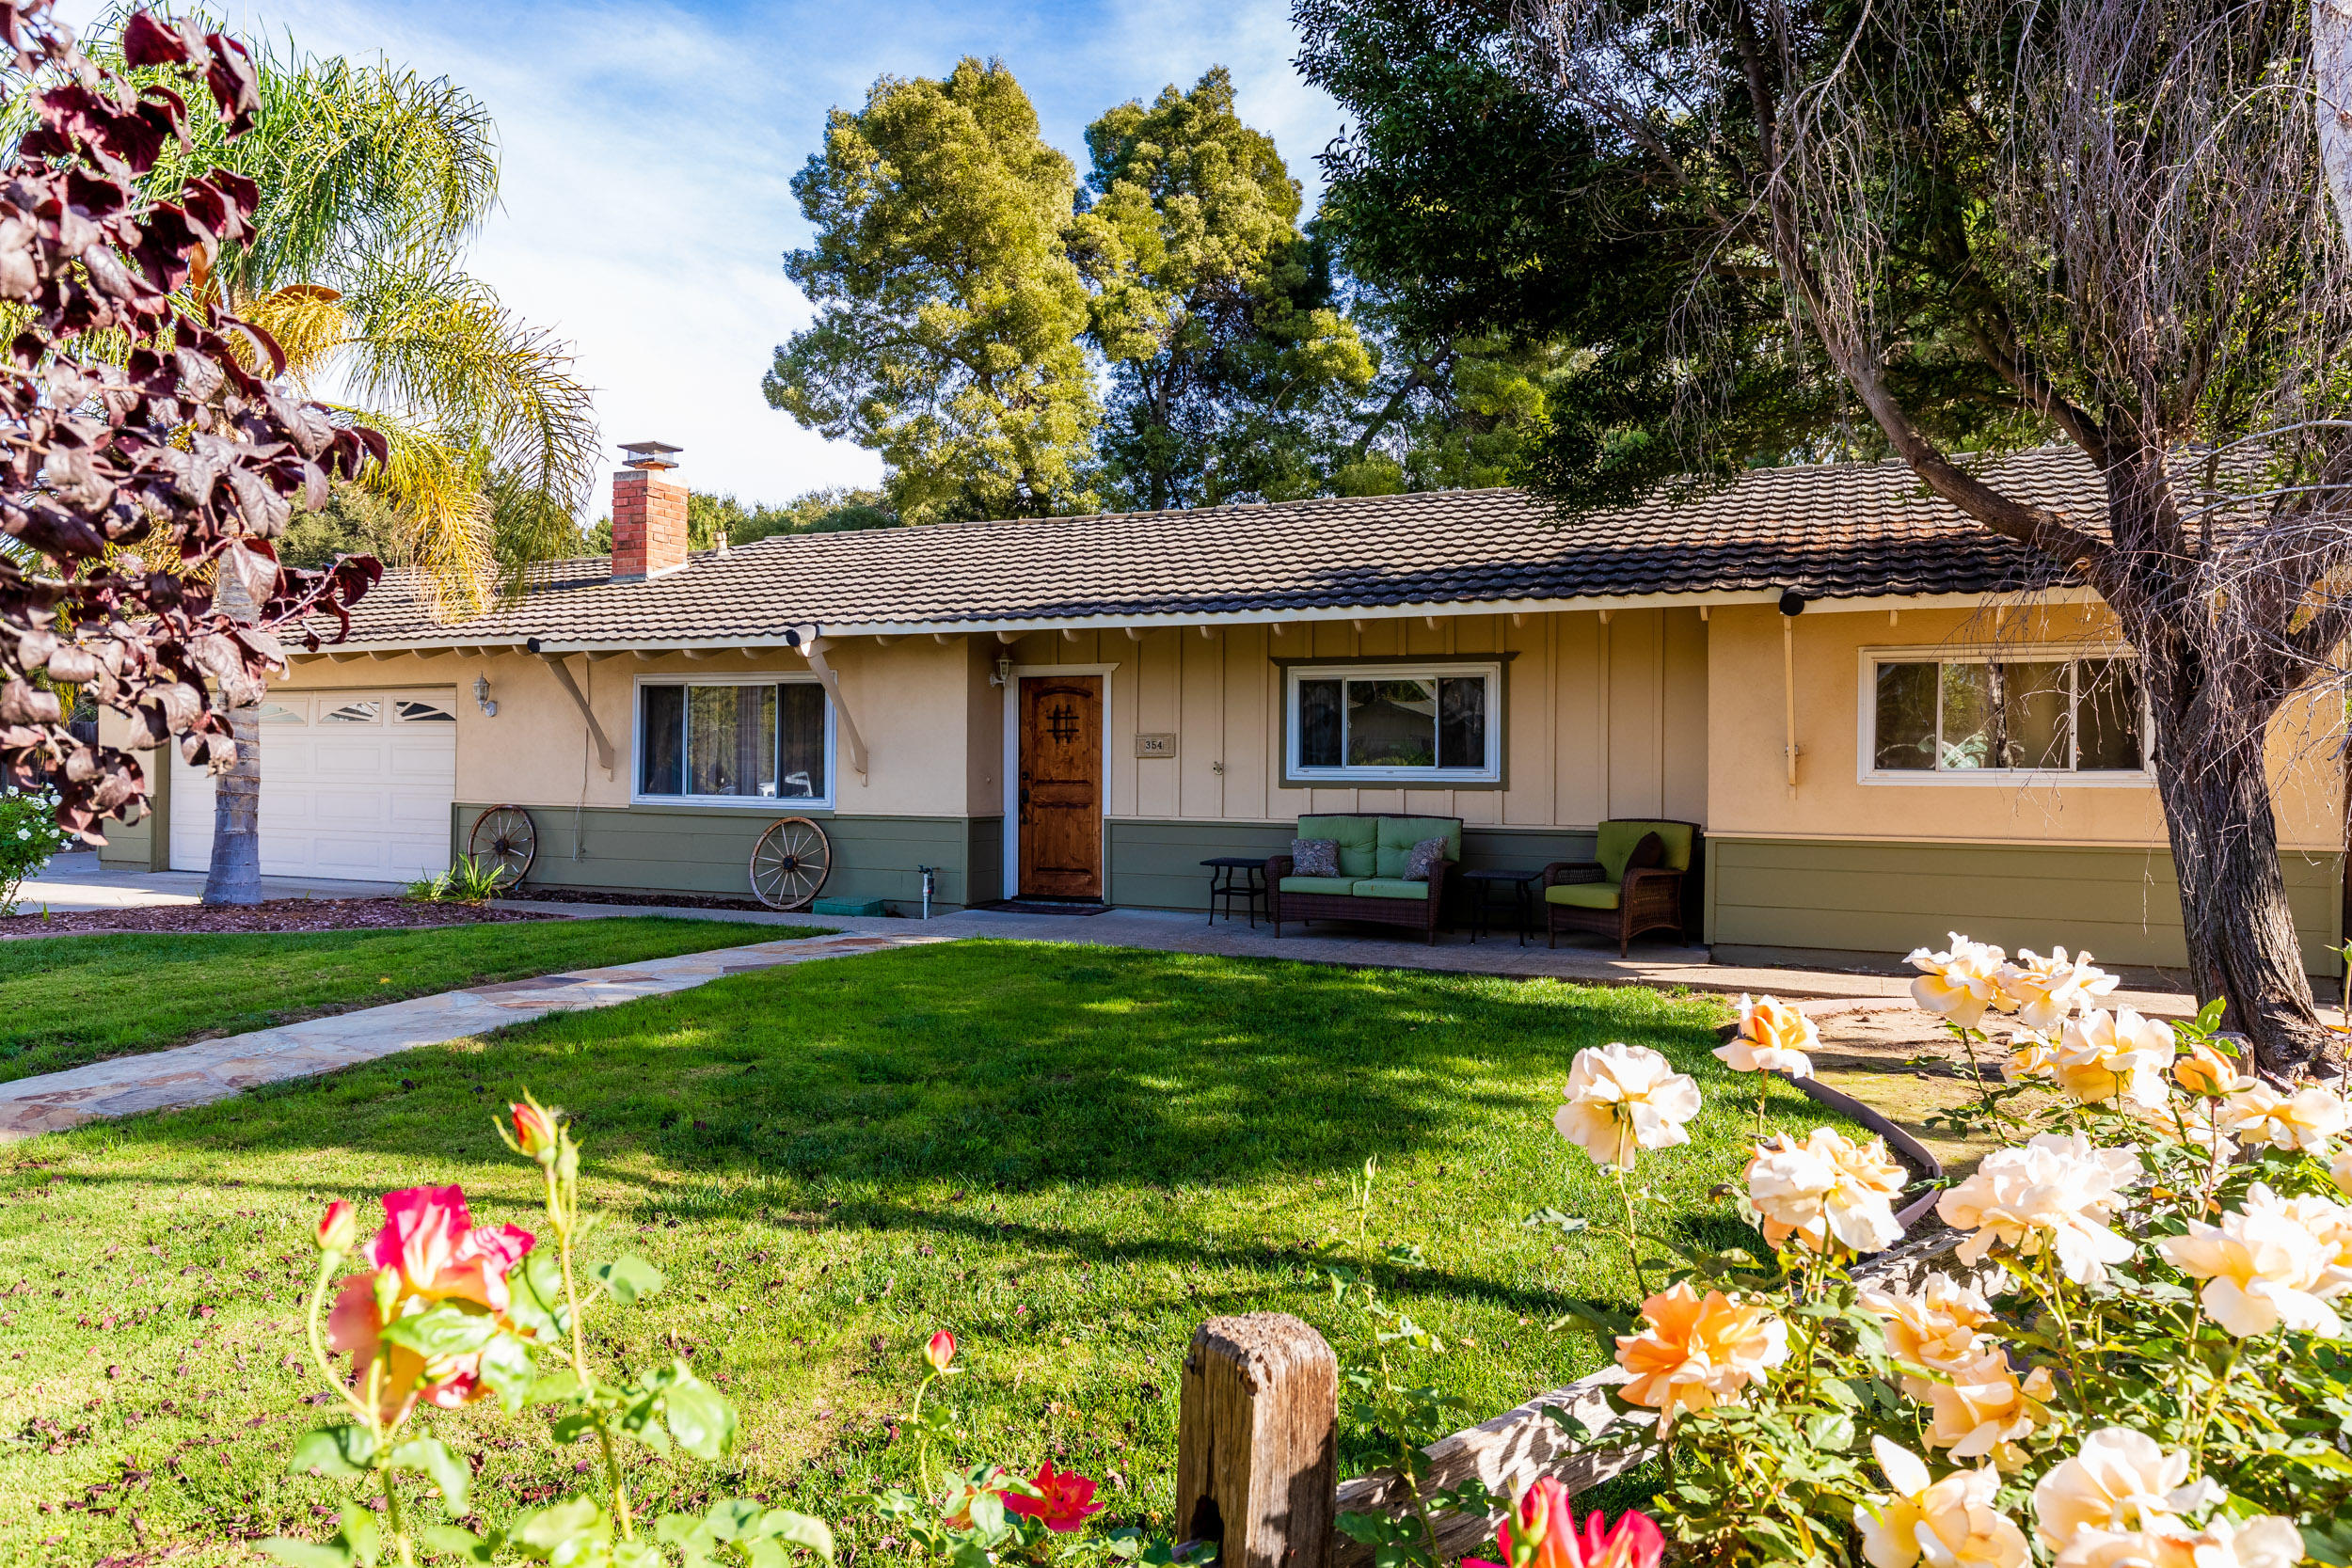 Property photo for 354 Kendale Rd Buellton, California 93427 - 18-3977